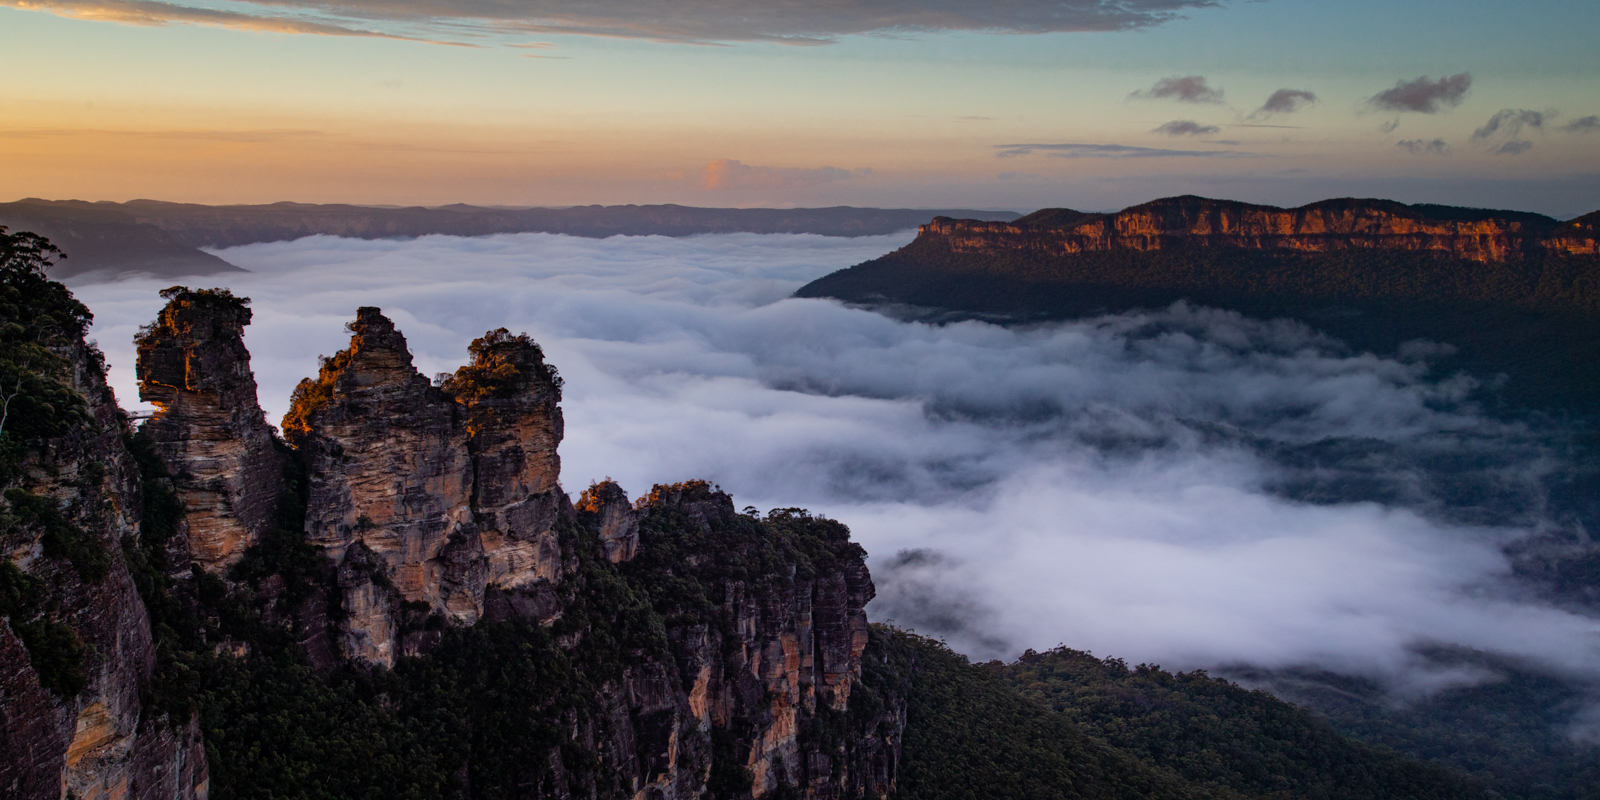 <h5>Sunrise - Echo Point, Blue Mountains - Austrailia</h5><p>By Steve Bancroft																	</p>